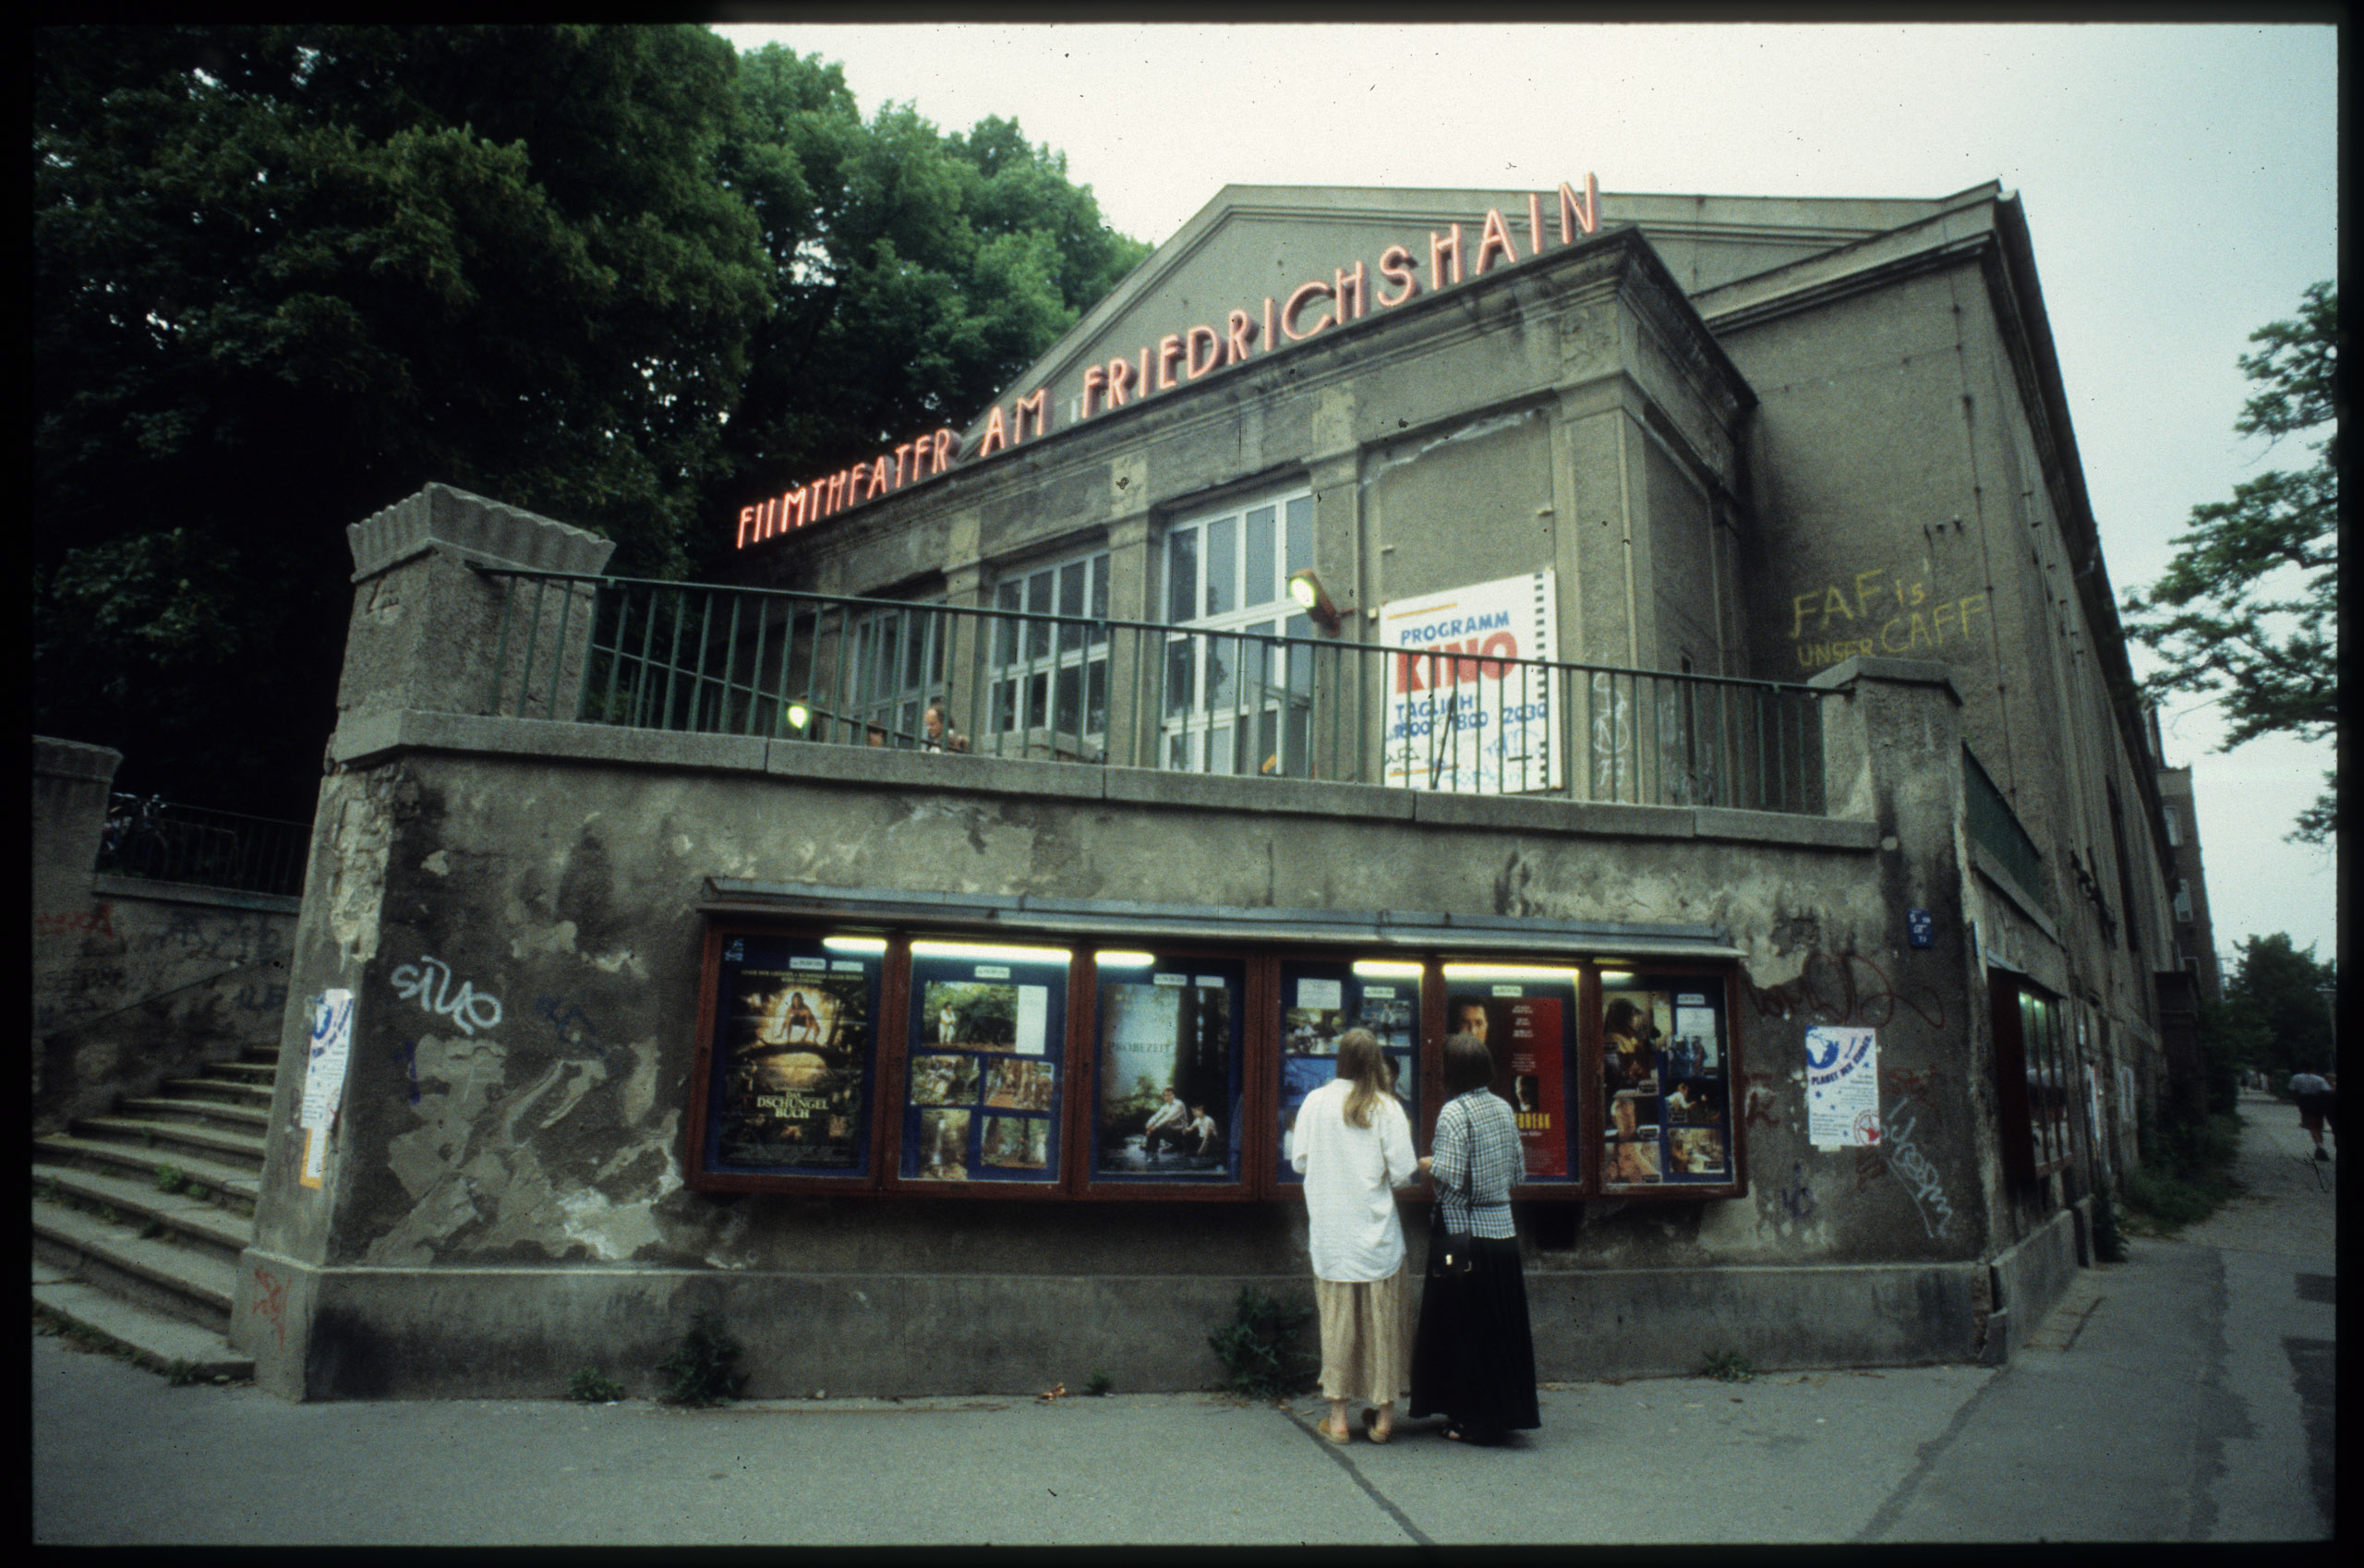 Color photo: cinema building with film posters in display cases and illuminated advertisements